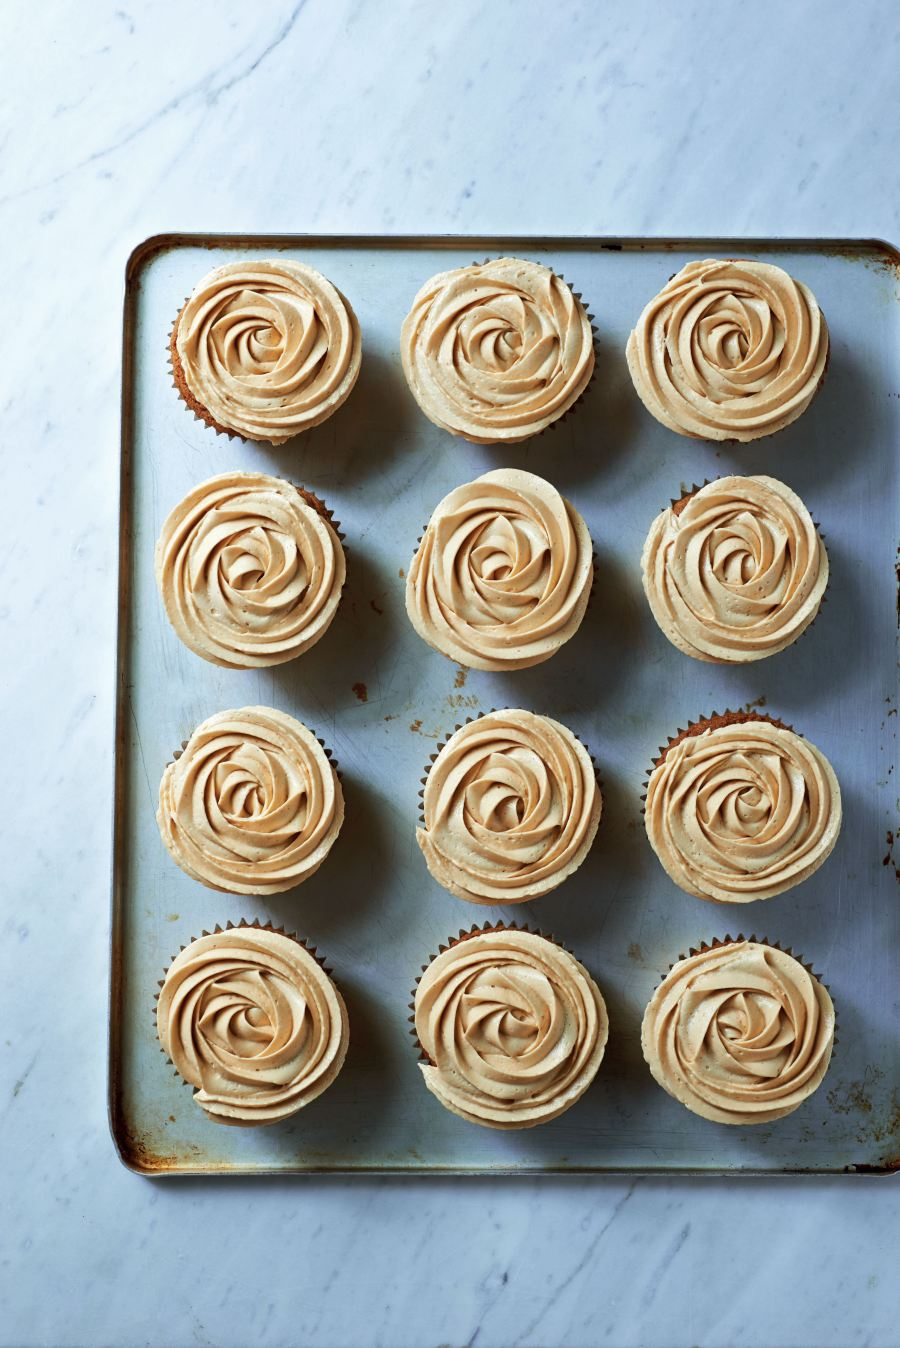 5556231b28817_htcc_muscovado_and_salted_caramel_cupcakes_1